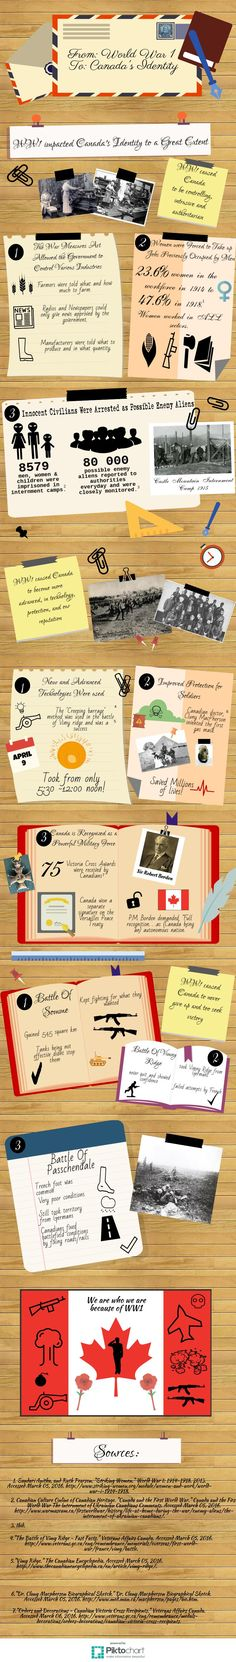 Wwi, Infographics, Infographic, Infographic Illustrations, Info Graphics